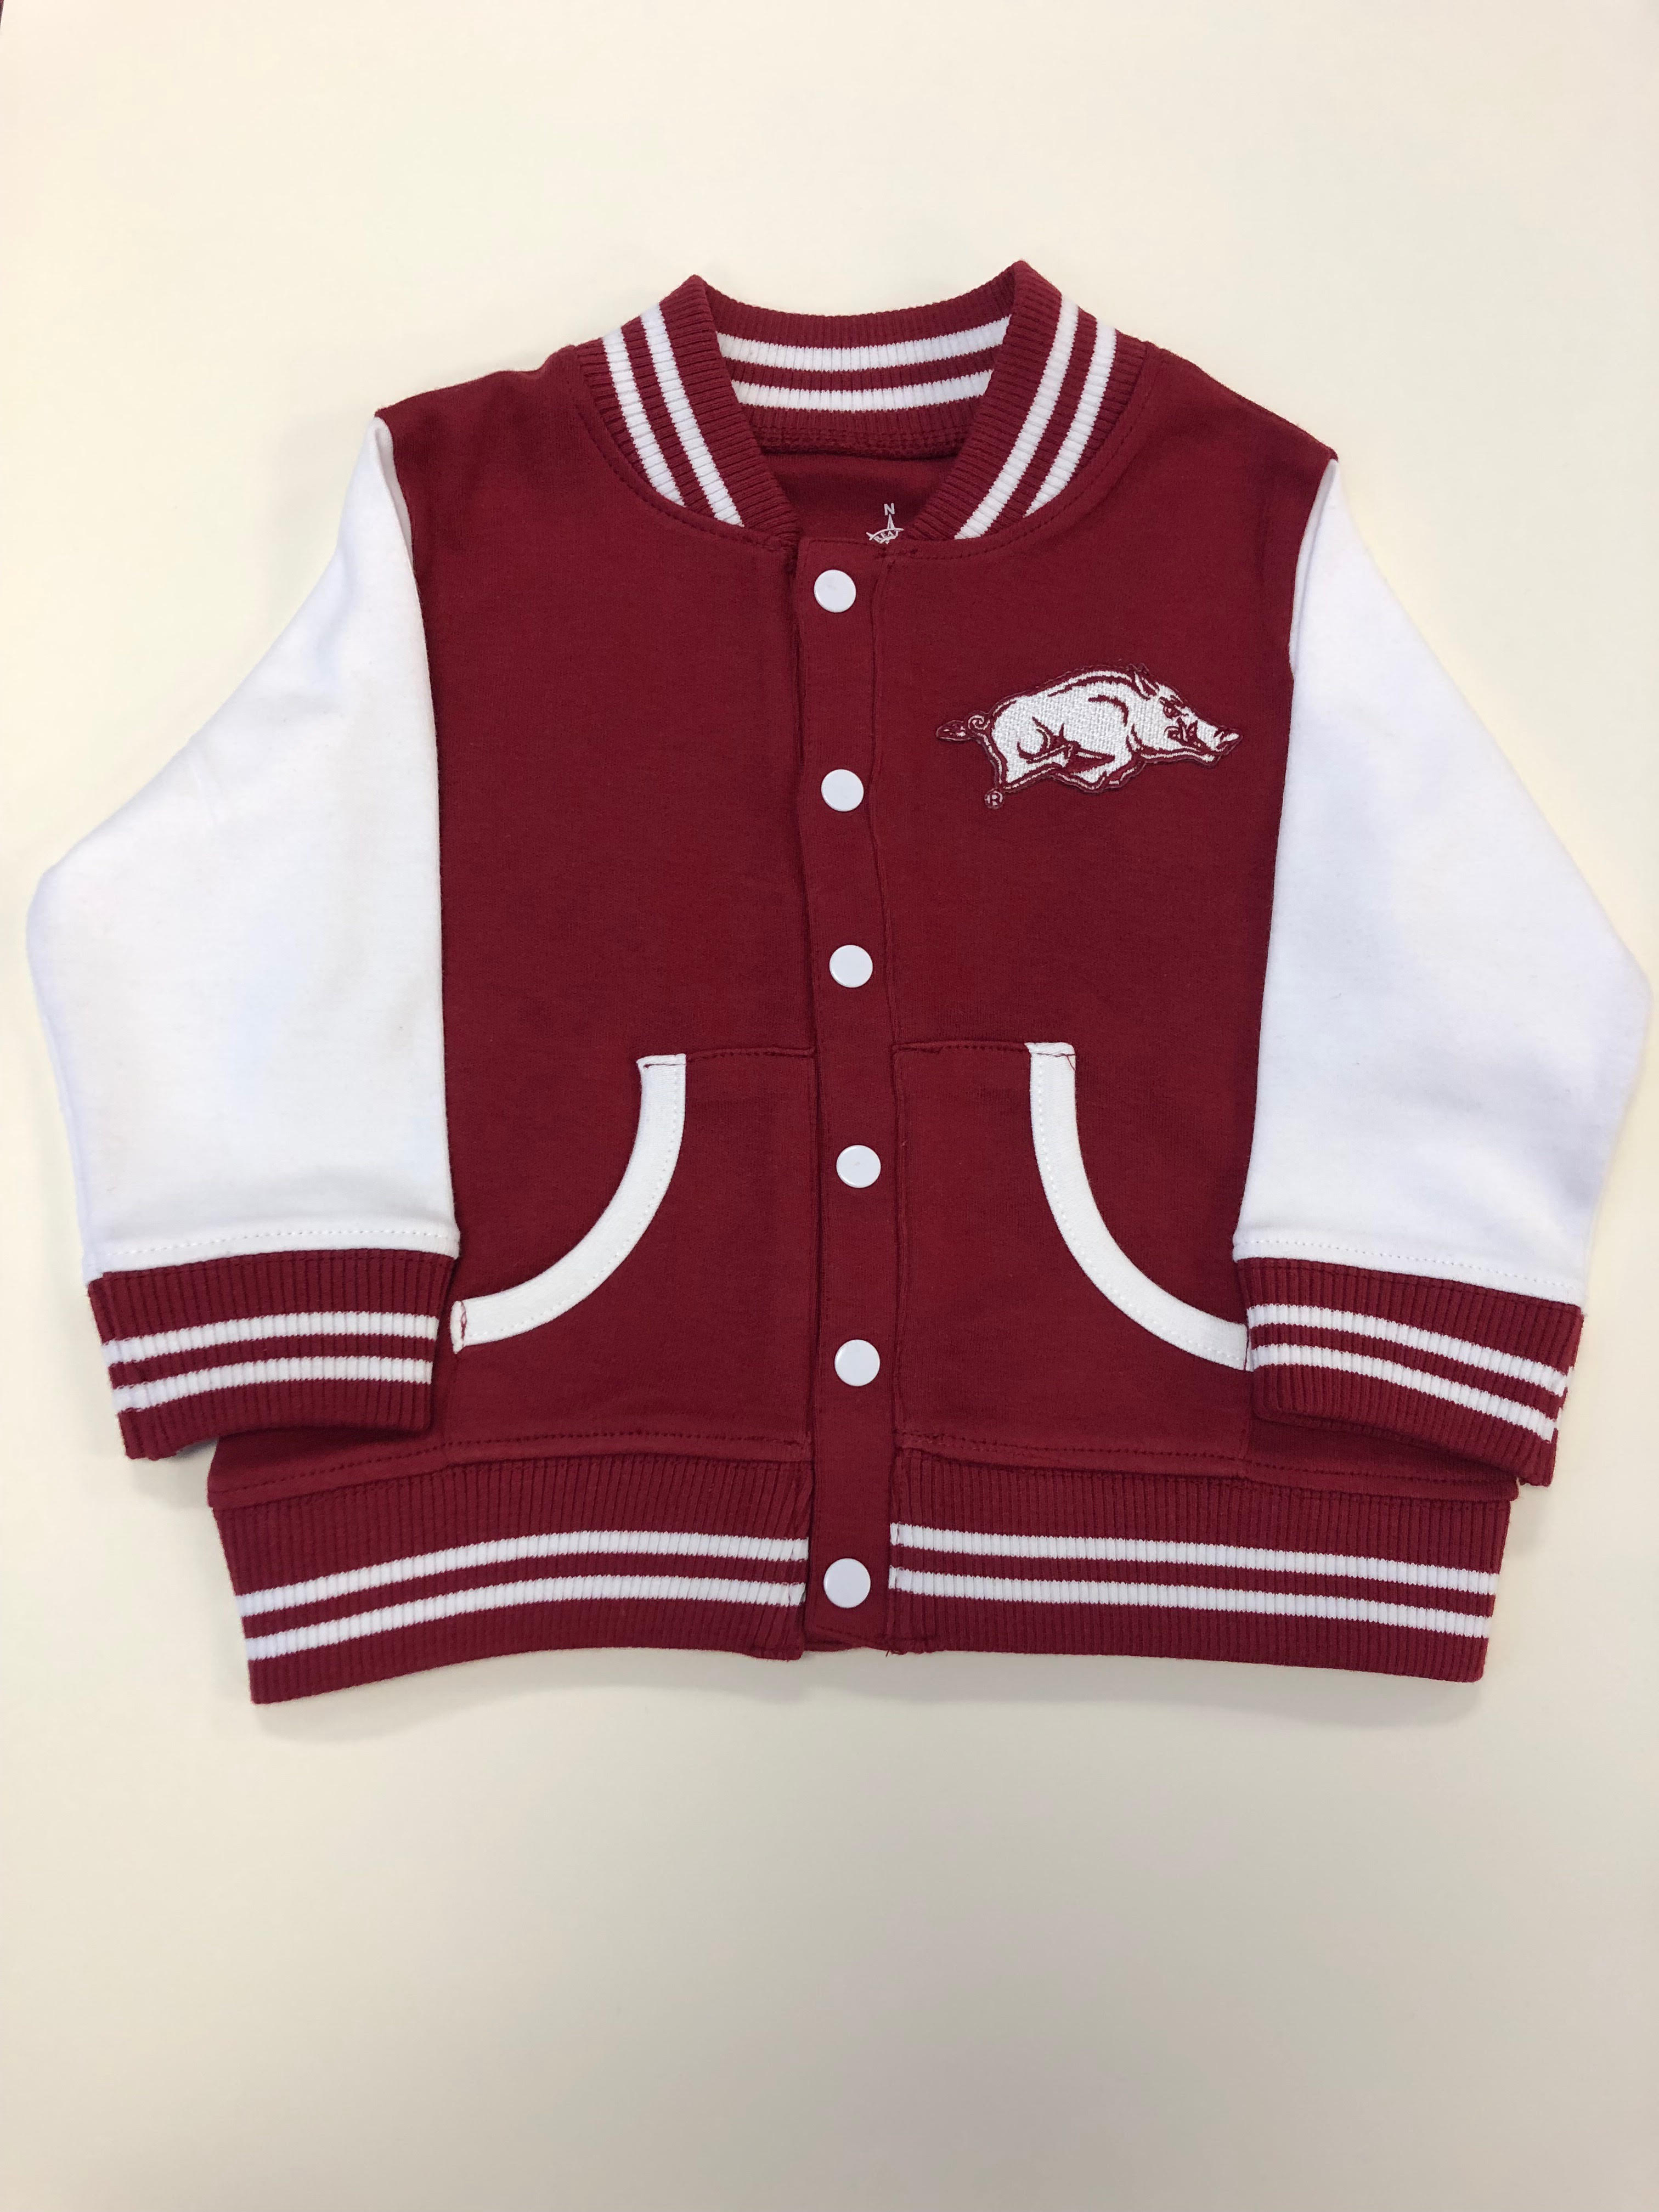 Razorback Toddler Varsity Jacket